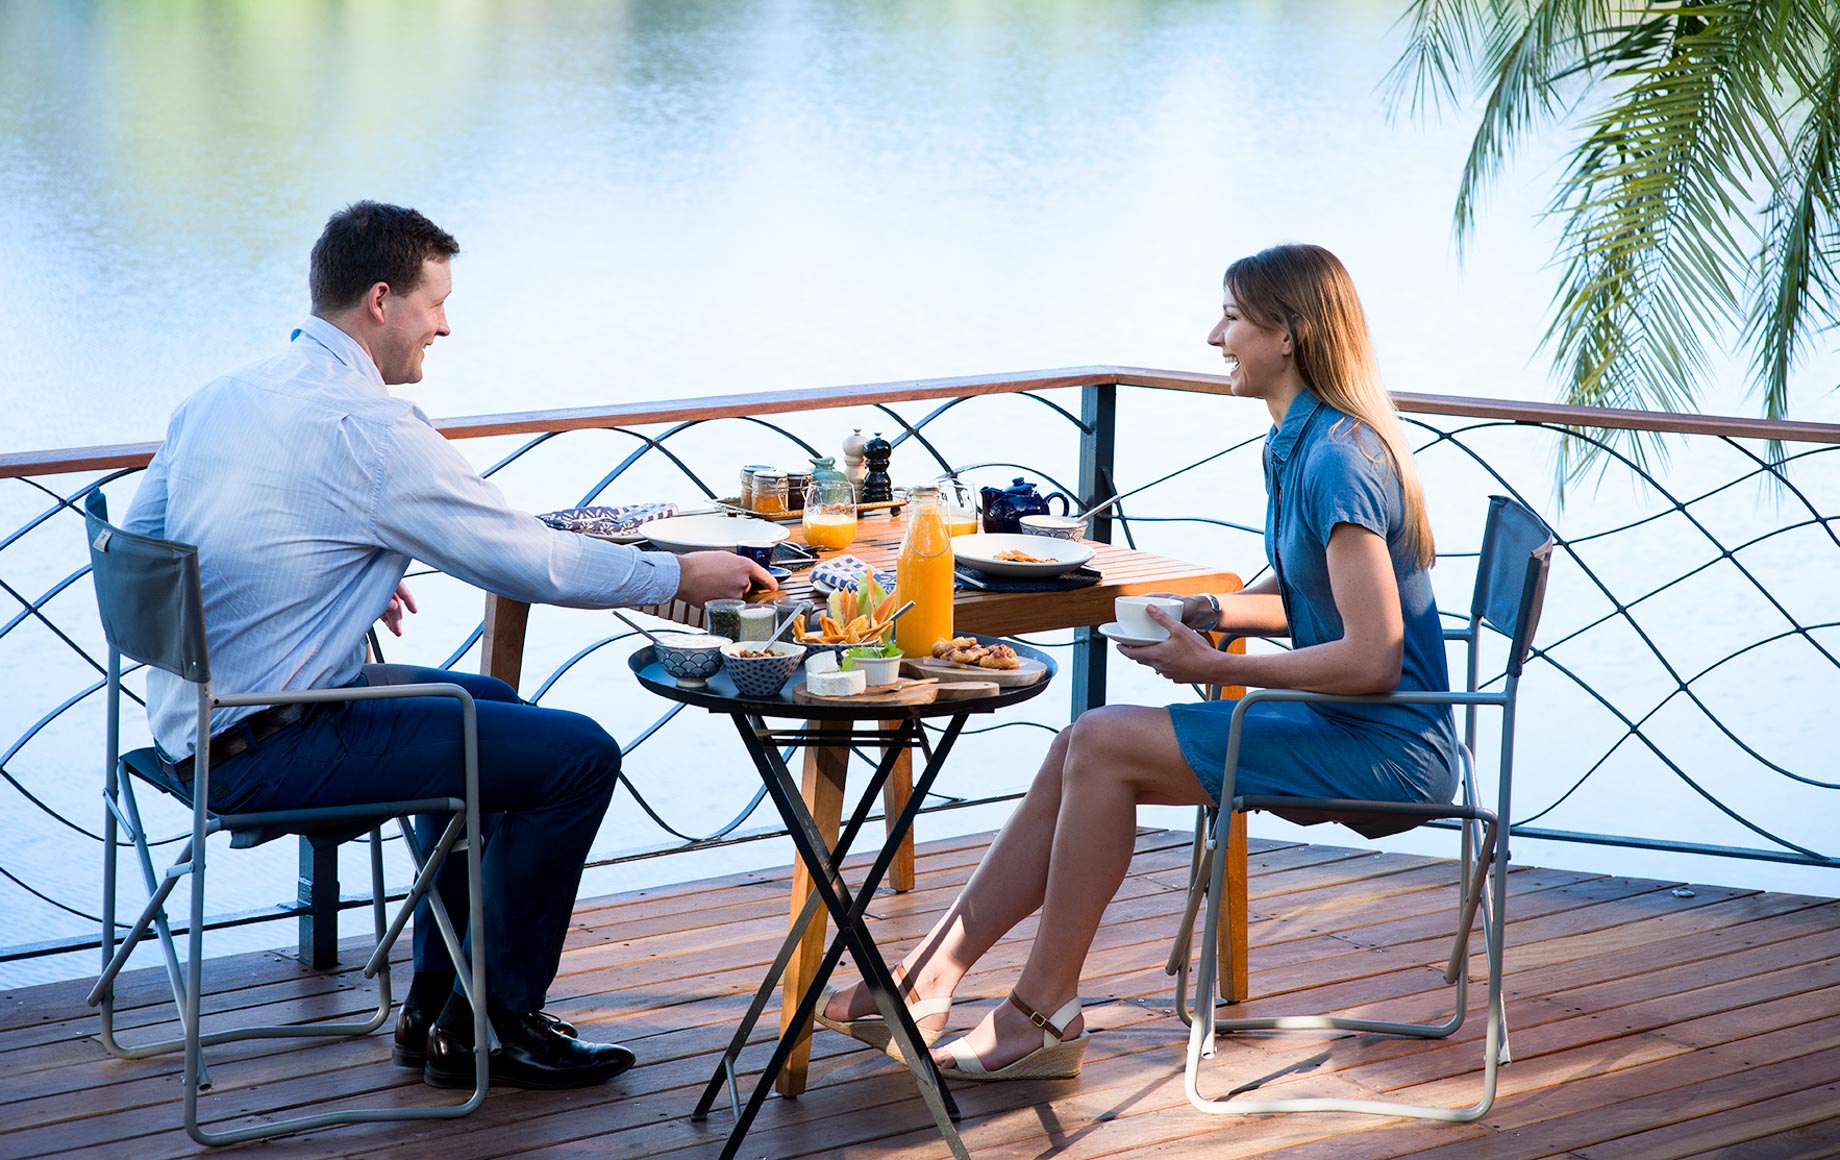 Man and woman sit at table on deck by river